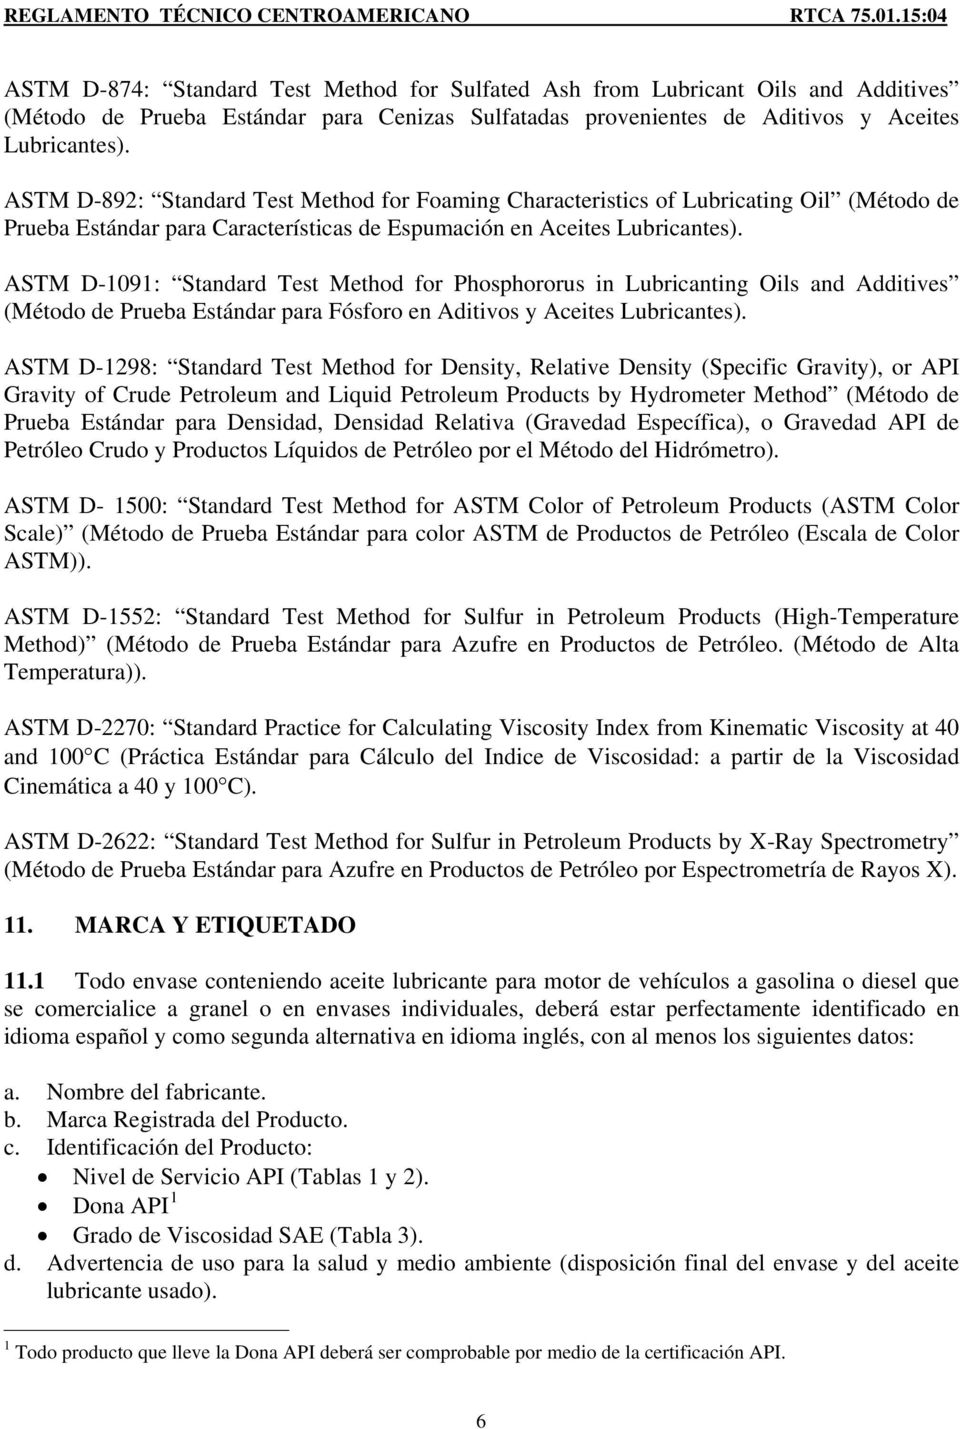 ASTM D-1091: Standard Test Method for Phosphororus in Lubricanting Oils and Additives (Método de Prueba Estándar para Fósforo en Aditivos y Aceites Lubricantes).